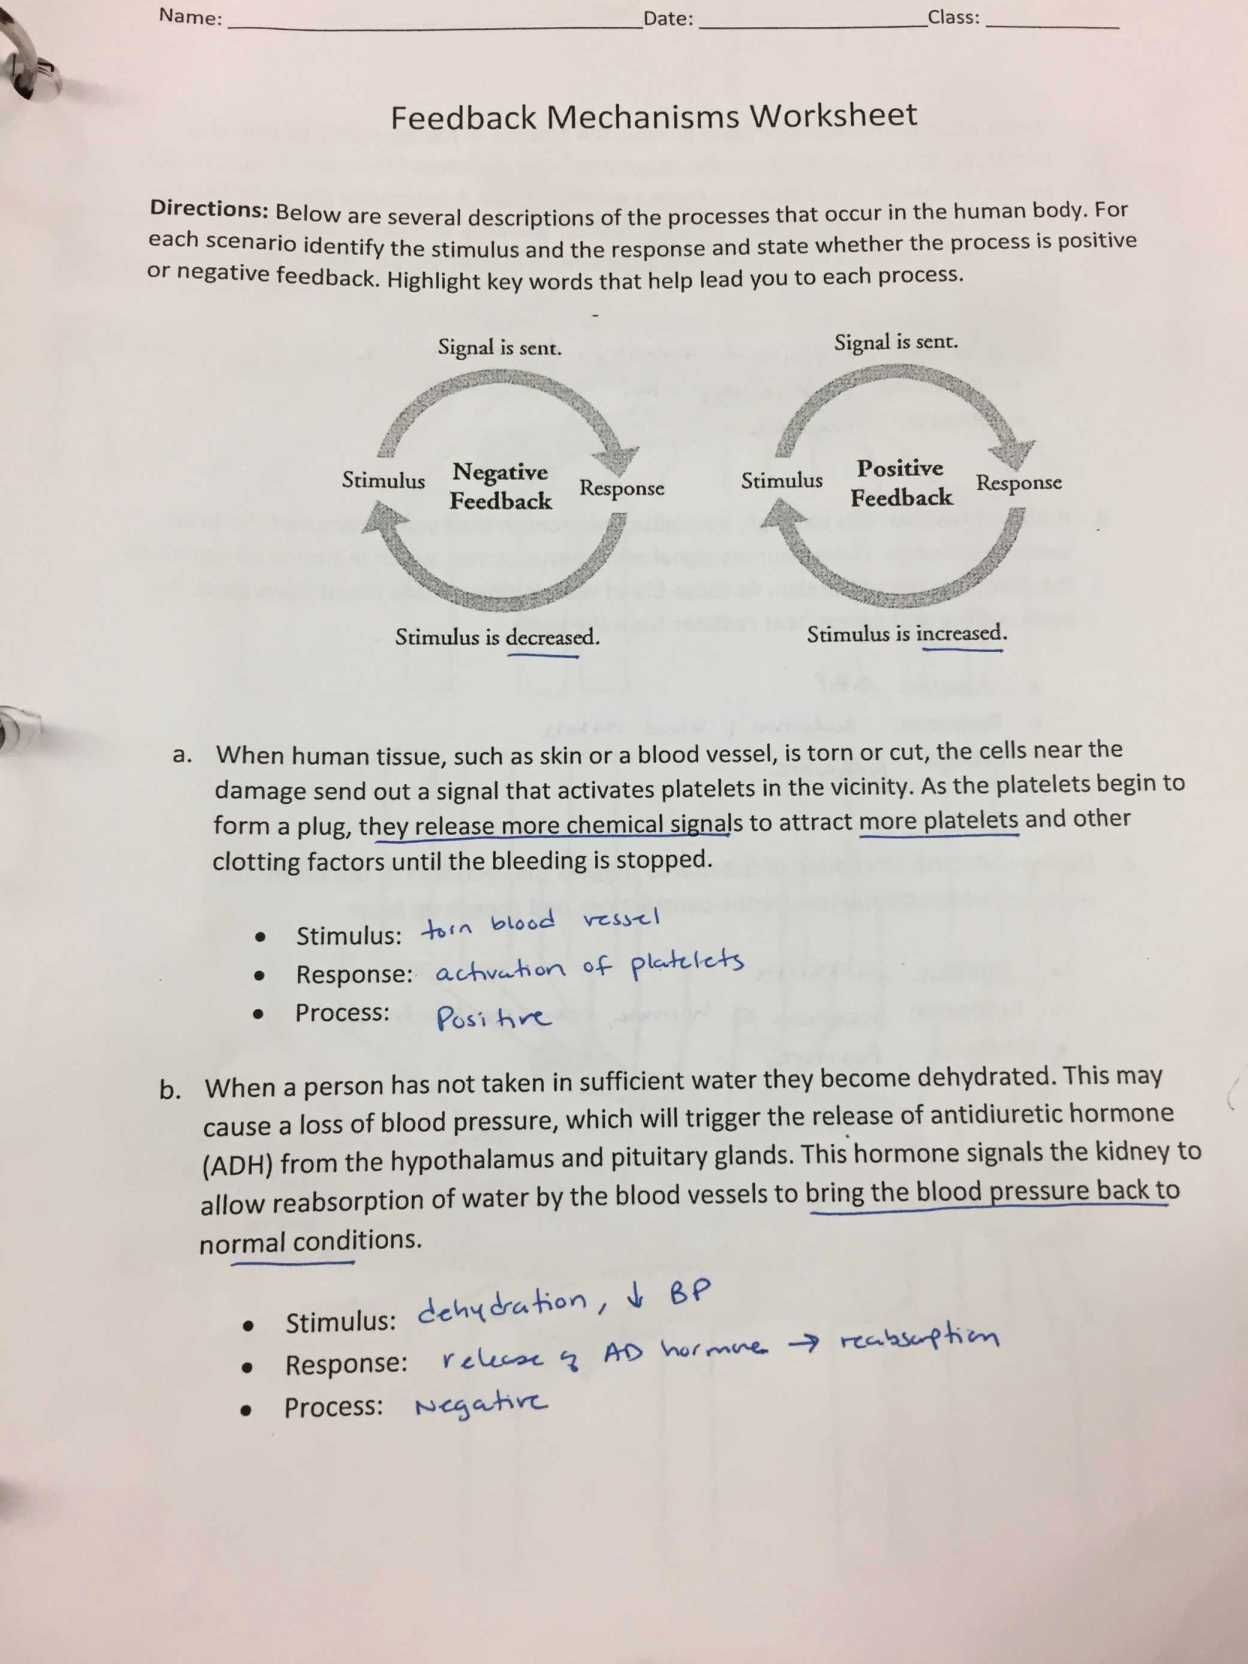 Reproducible Student Worksheet